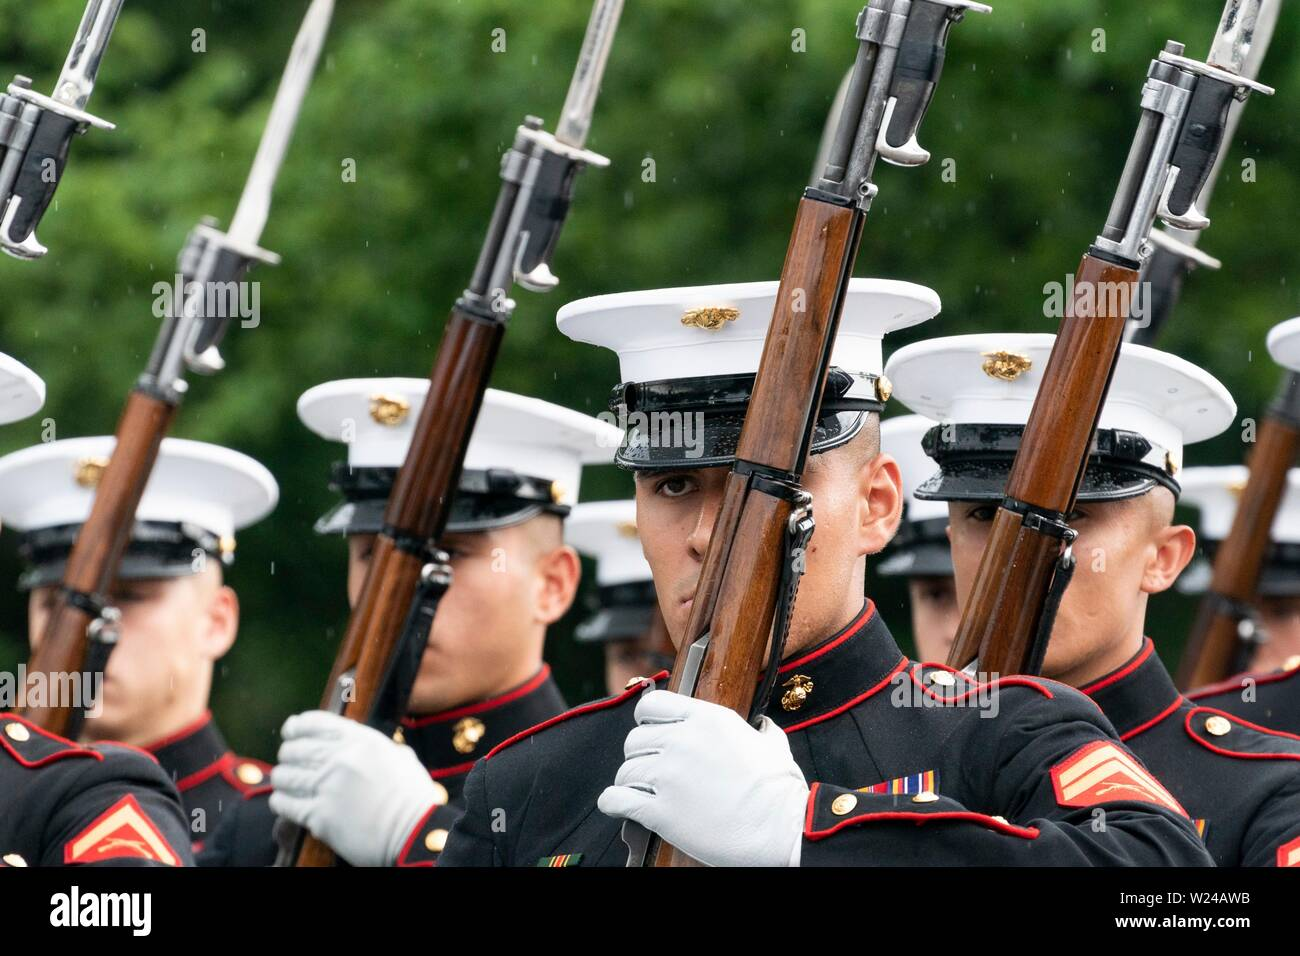 Washington DC, USA. 04th July, 2019. The U.S. Marine Corps Silent Drill Platoon performs at the Salute to America event at the Lincoln Memorial July 4, 2019 in Washington, D.C. Credit: Planetpix/Alamy Live News Stock Photo